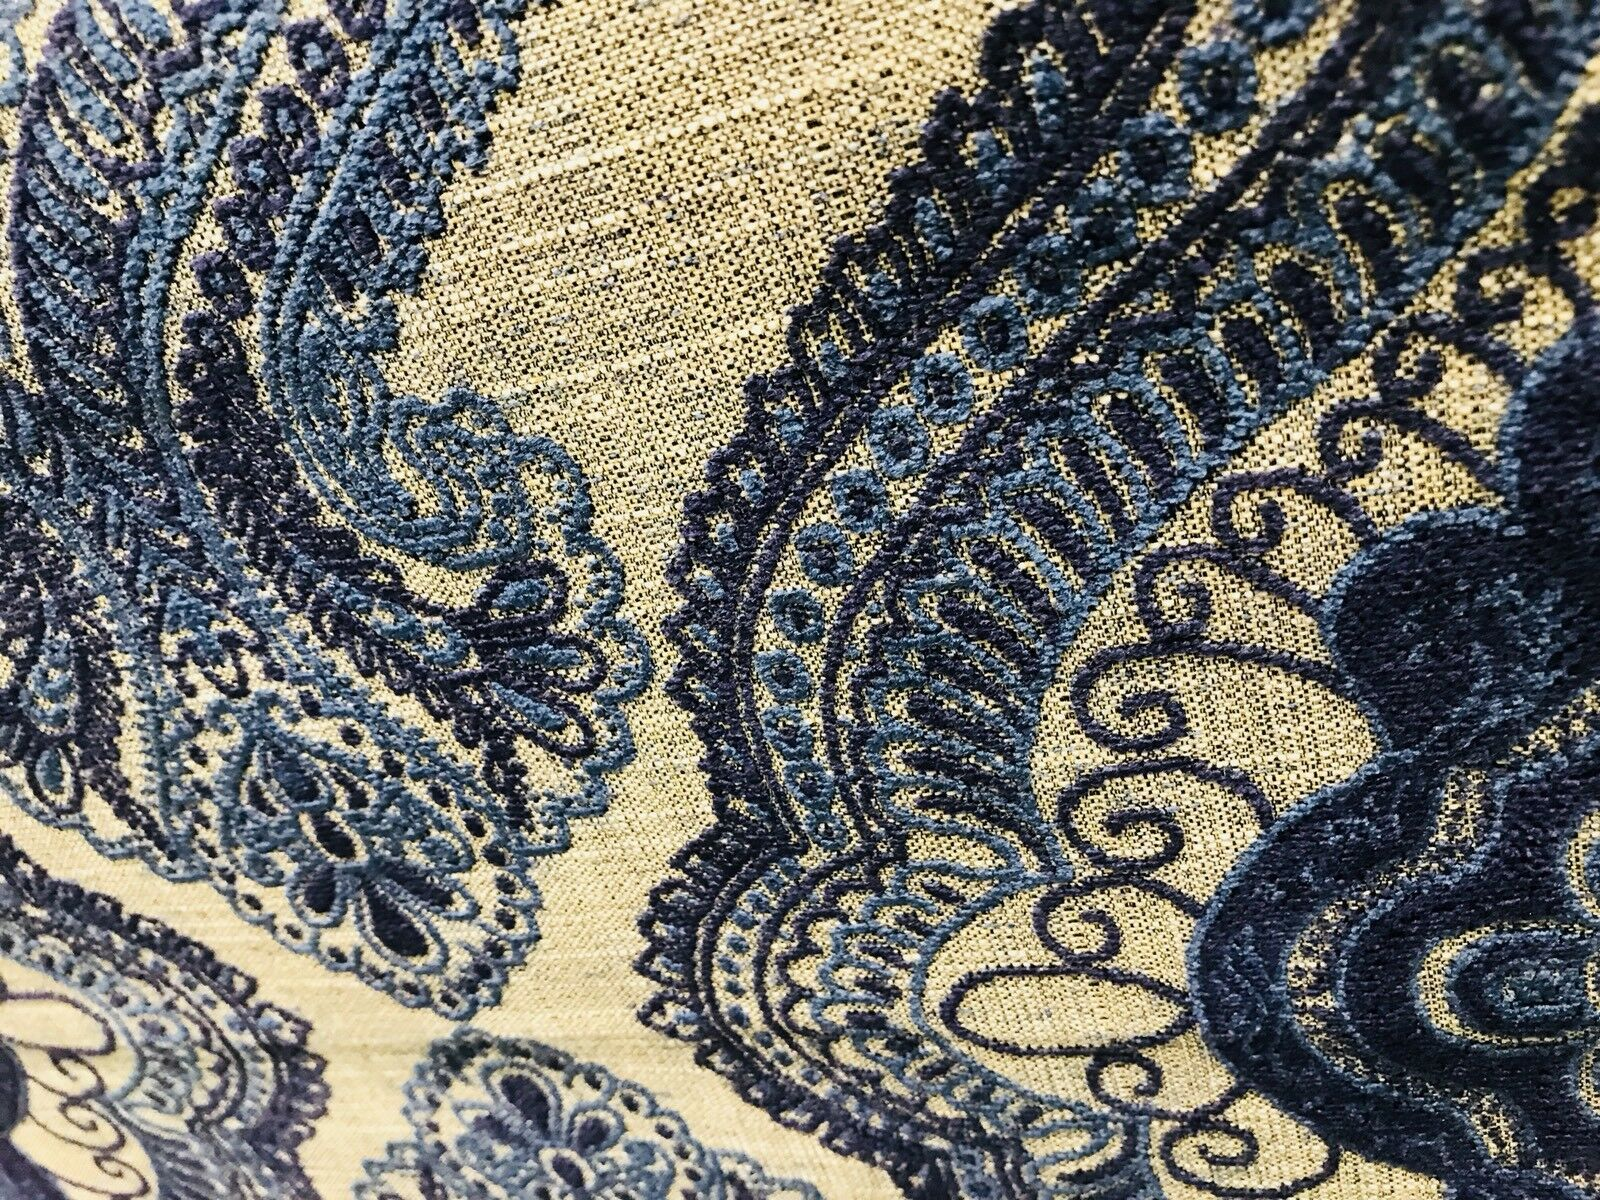 SWATCH Designer Burnout Linen Inspired Upholstery Fabric- Indigo Blue And Flax